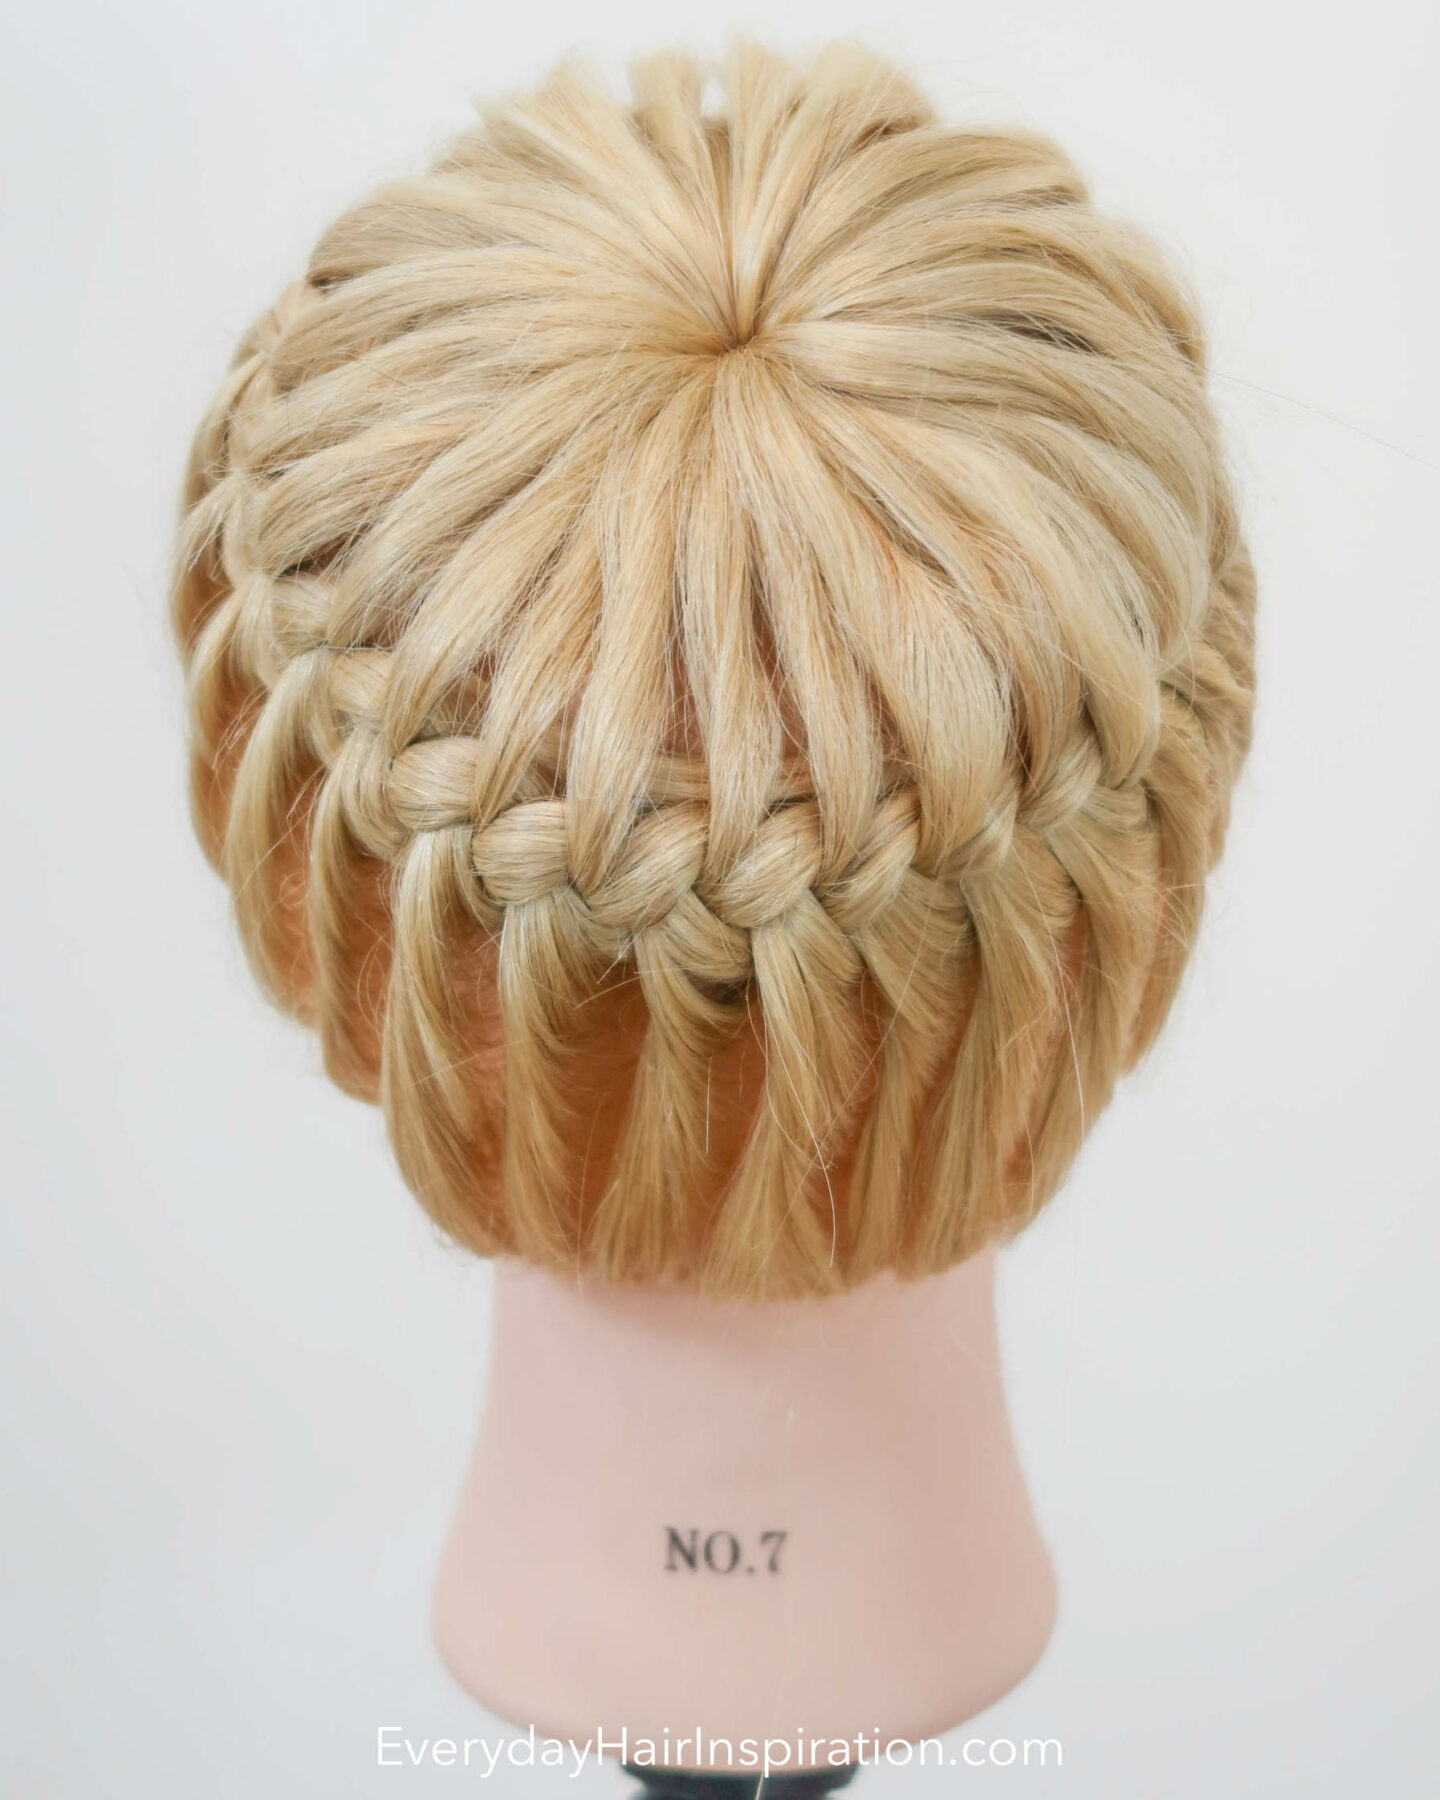 Blonde hairdresser doll seen from the back with a crown braid, braided in the hair.